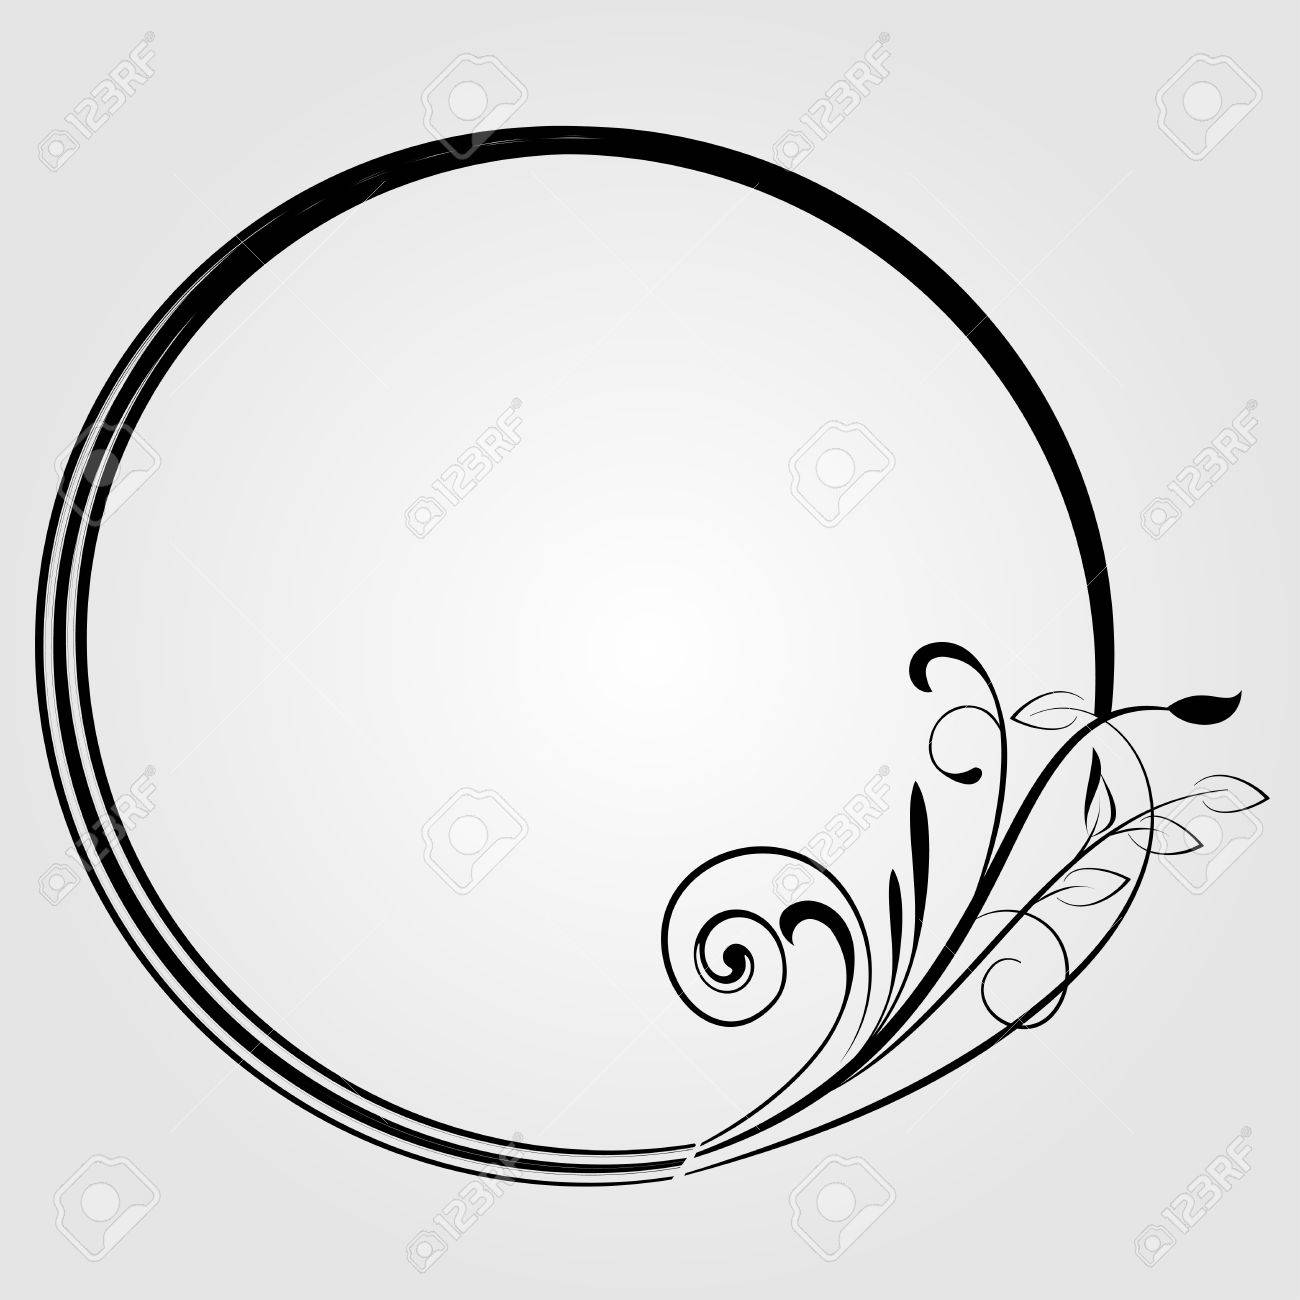 Round frame with decorative branch vector illustration stock - Round Frame With Decorative Branch Stock Vector 23012477